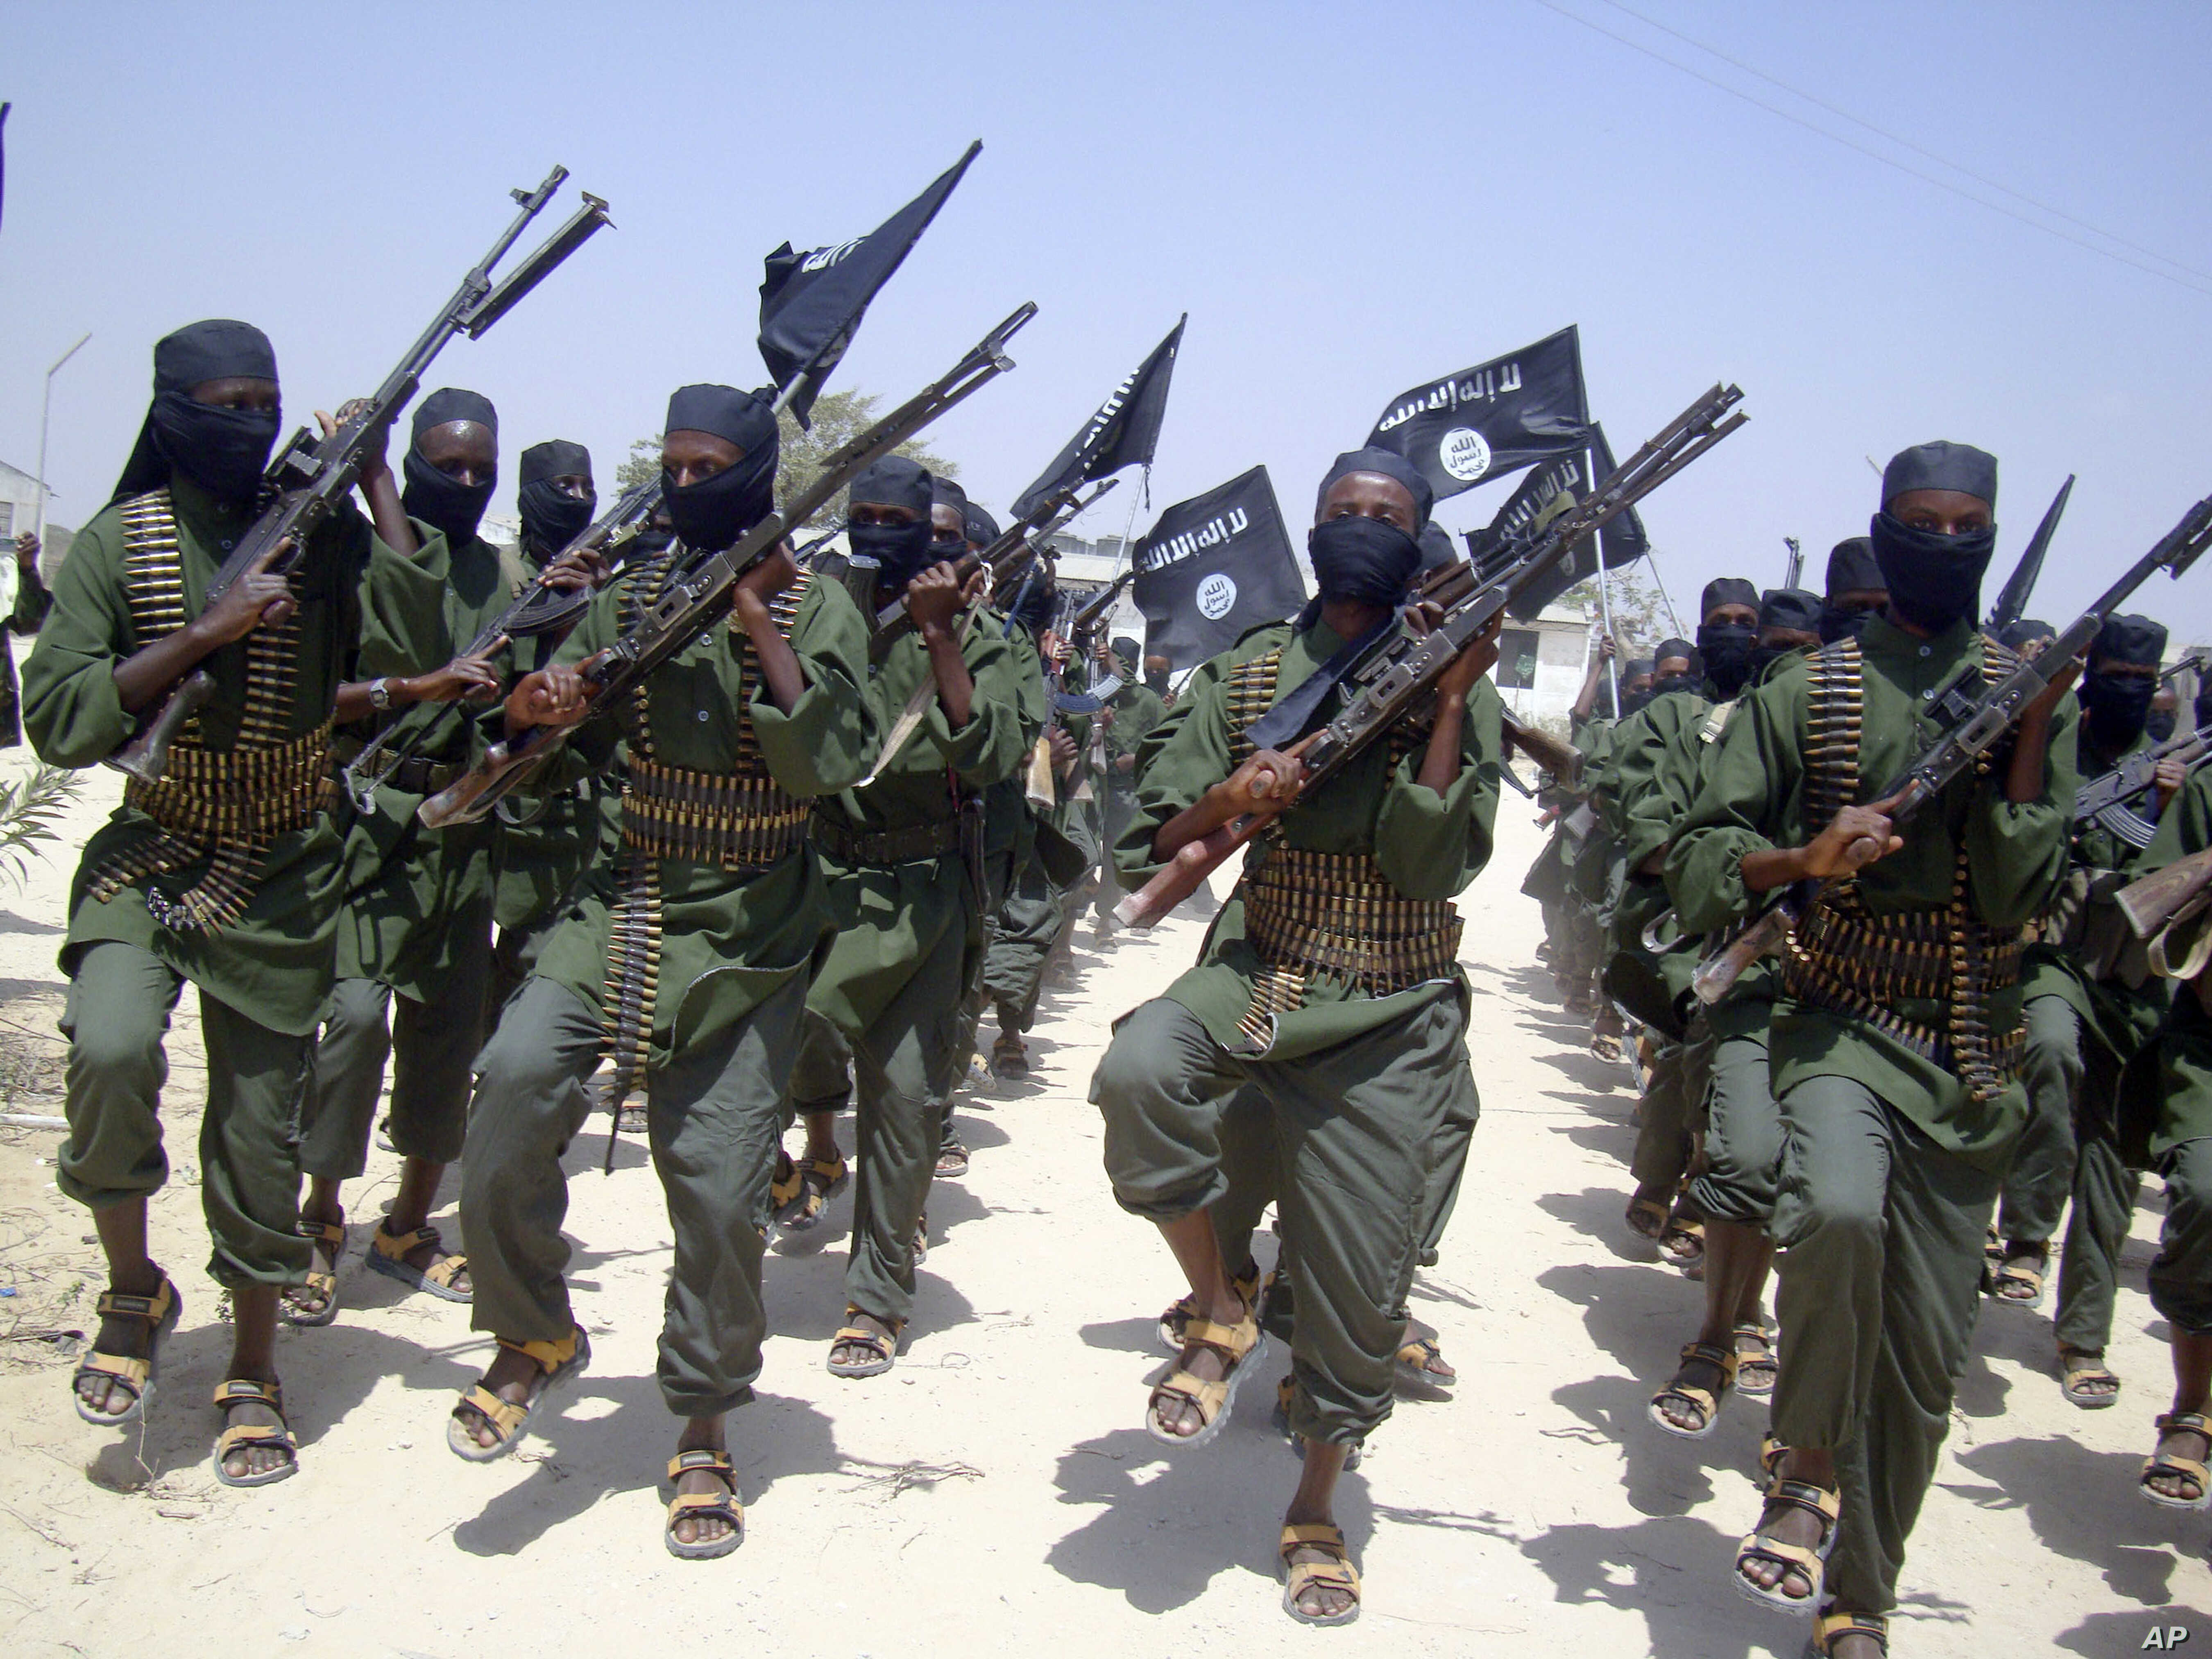 FILE - Al-Shabab fighters march with their weapons during military exercises on the outskirts of Mogadishu, Somalia, Feb. 17, 2011. Missiles fired Feb. 21, 2018, targeted a rickshaw carrying al-Shabab militants near Jamaame, in the southern Lower Jub